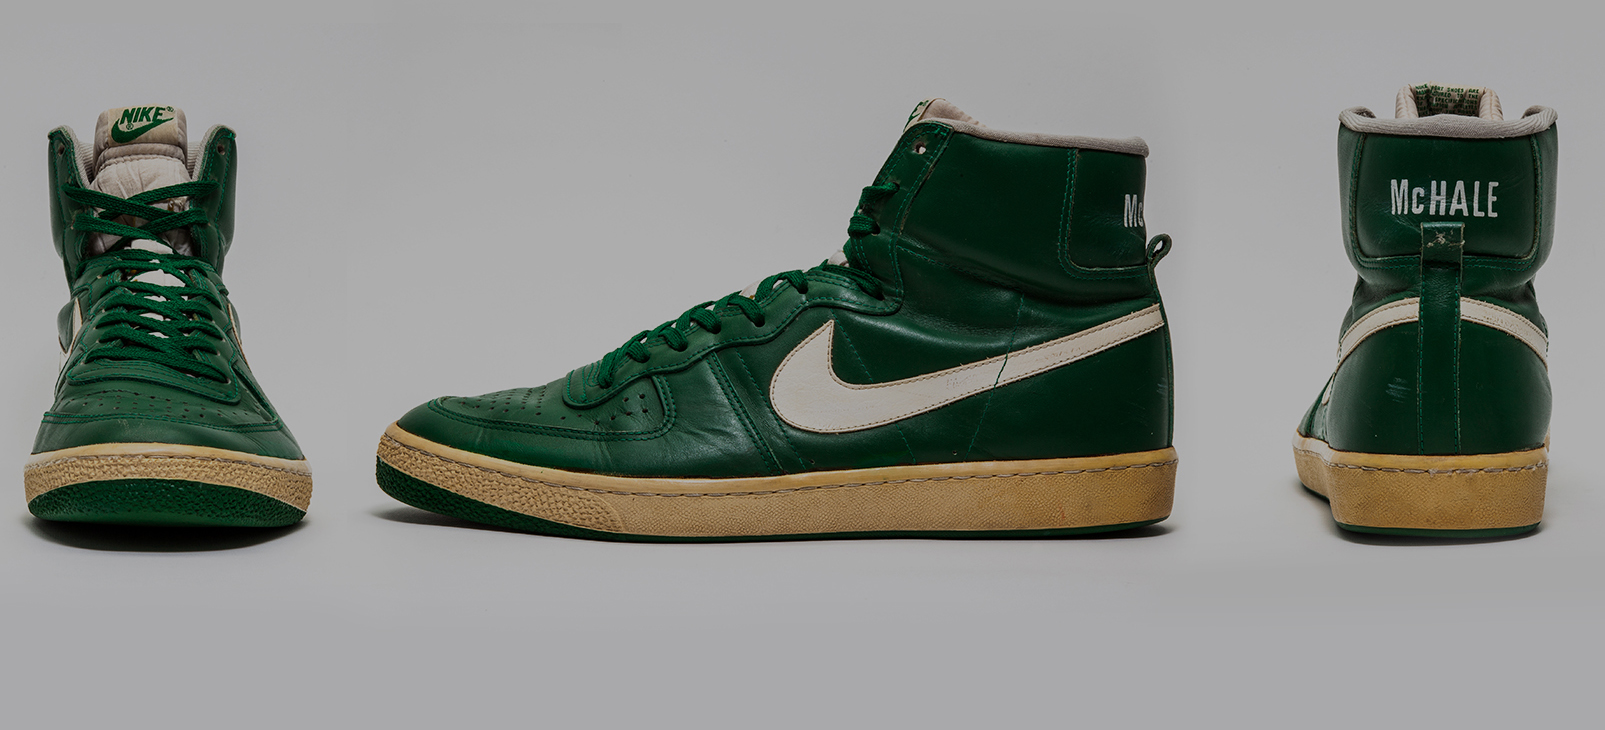 5d979bcb289f Vintage Nike Collectors. Four collectors share their love of ...